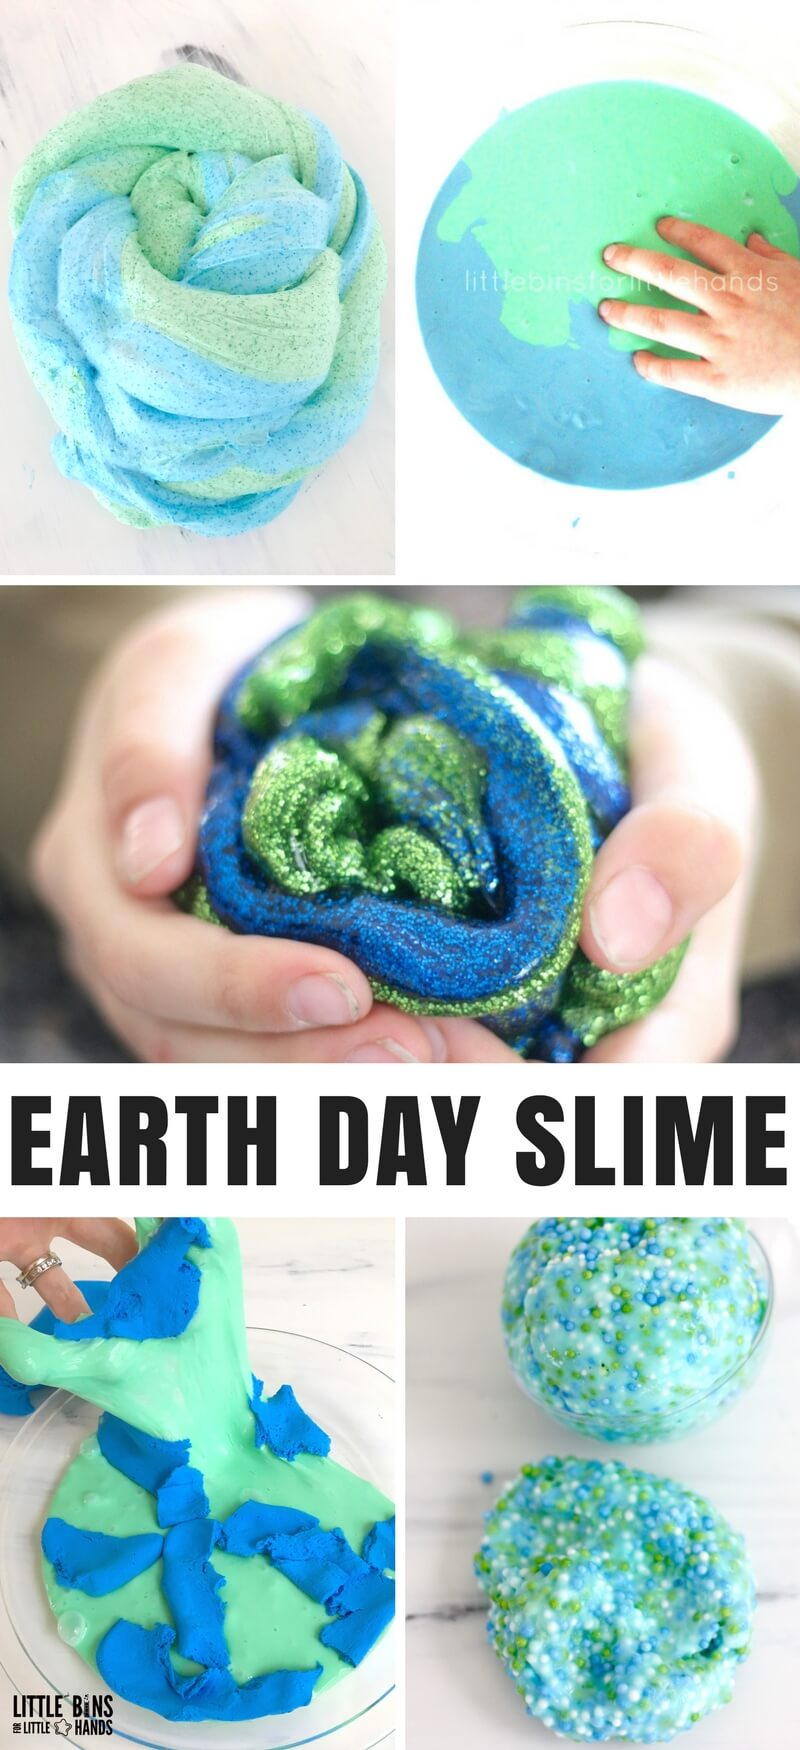 Learn how to make Earth Day slime recipe ideas quickly and easily with these great homemade slime recipes. We love making slime, and want to show you how to make the best slime ever. If you want to try a little something different this Earth Day after spring clean ups and starting seeds, try a theme slime!